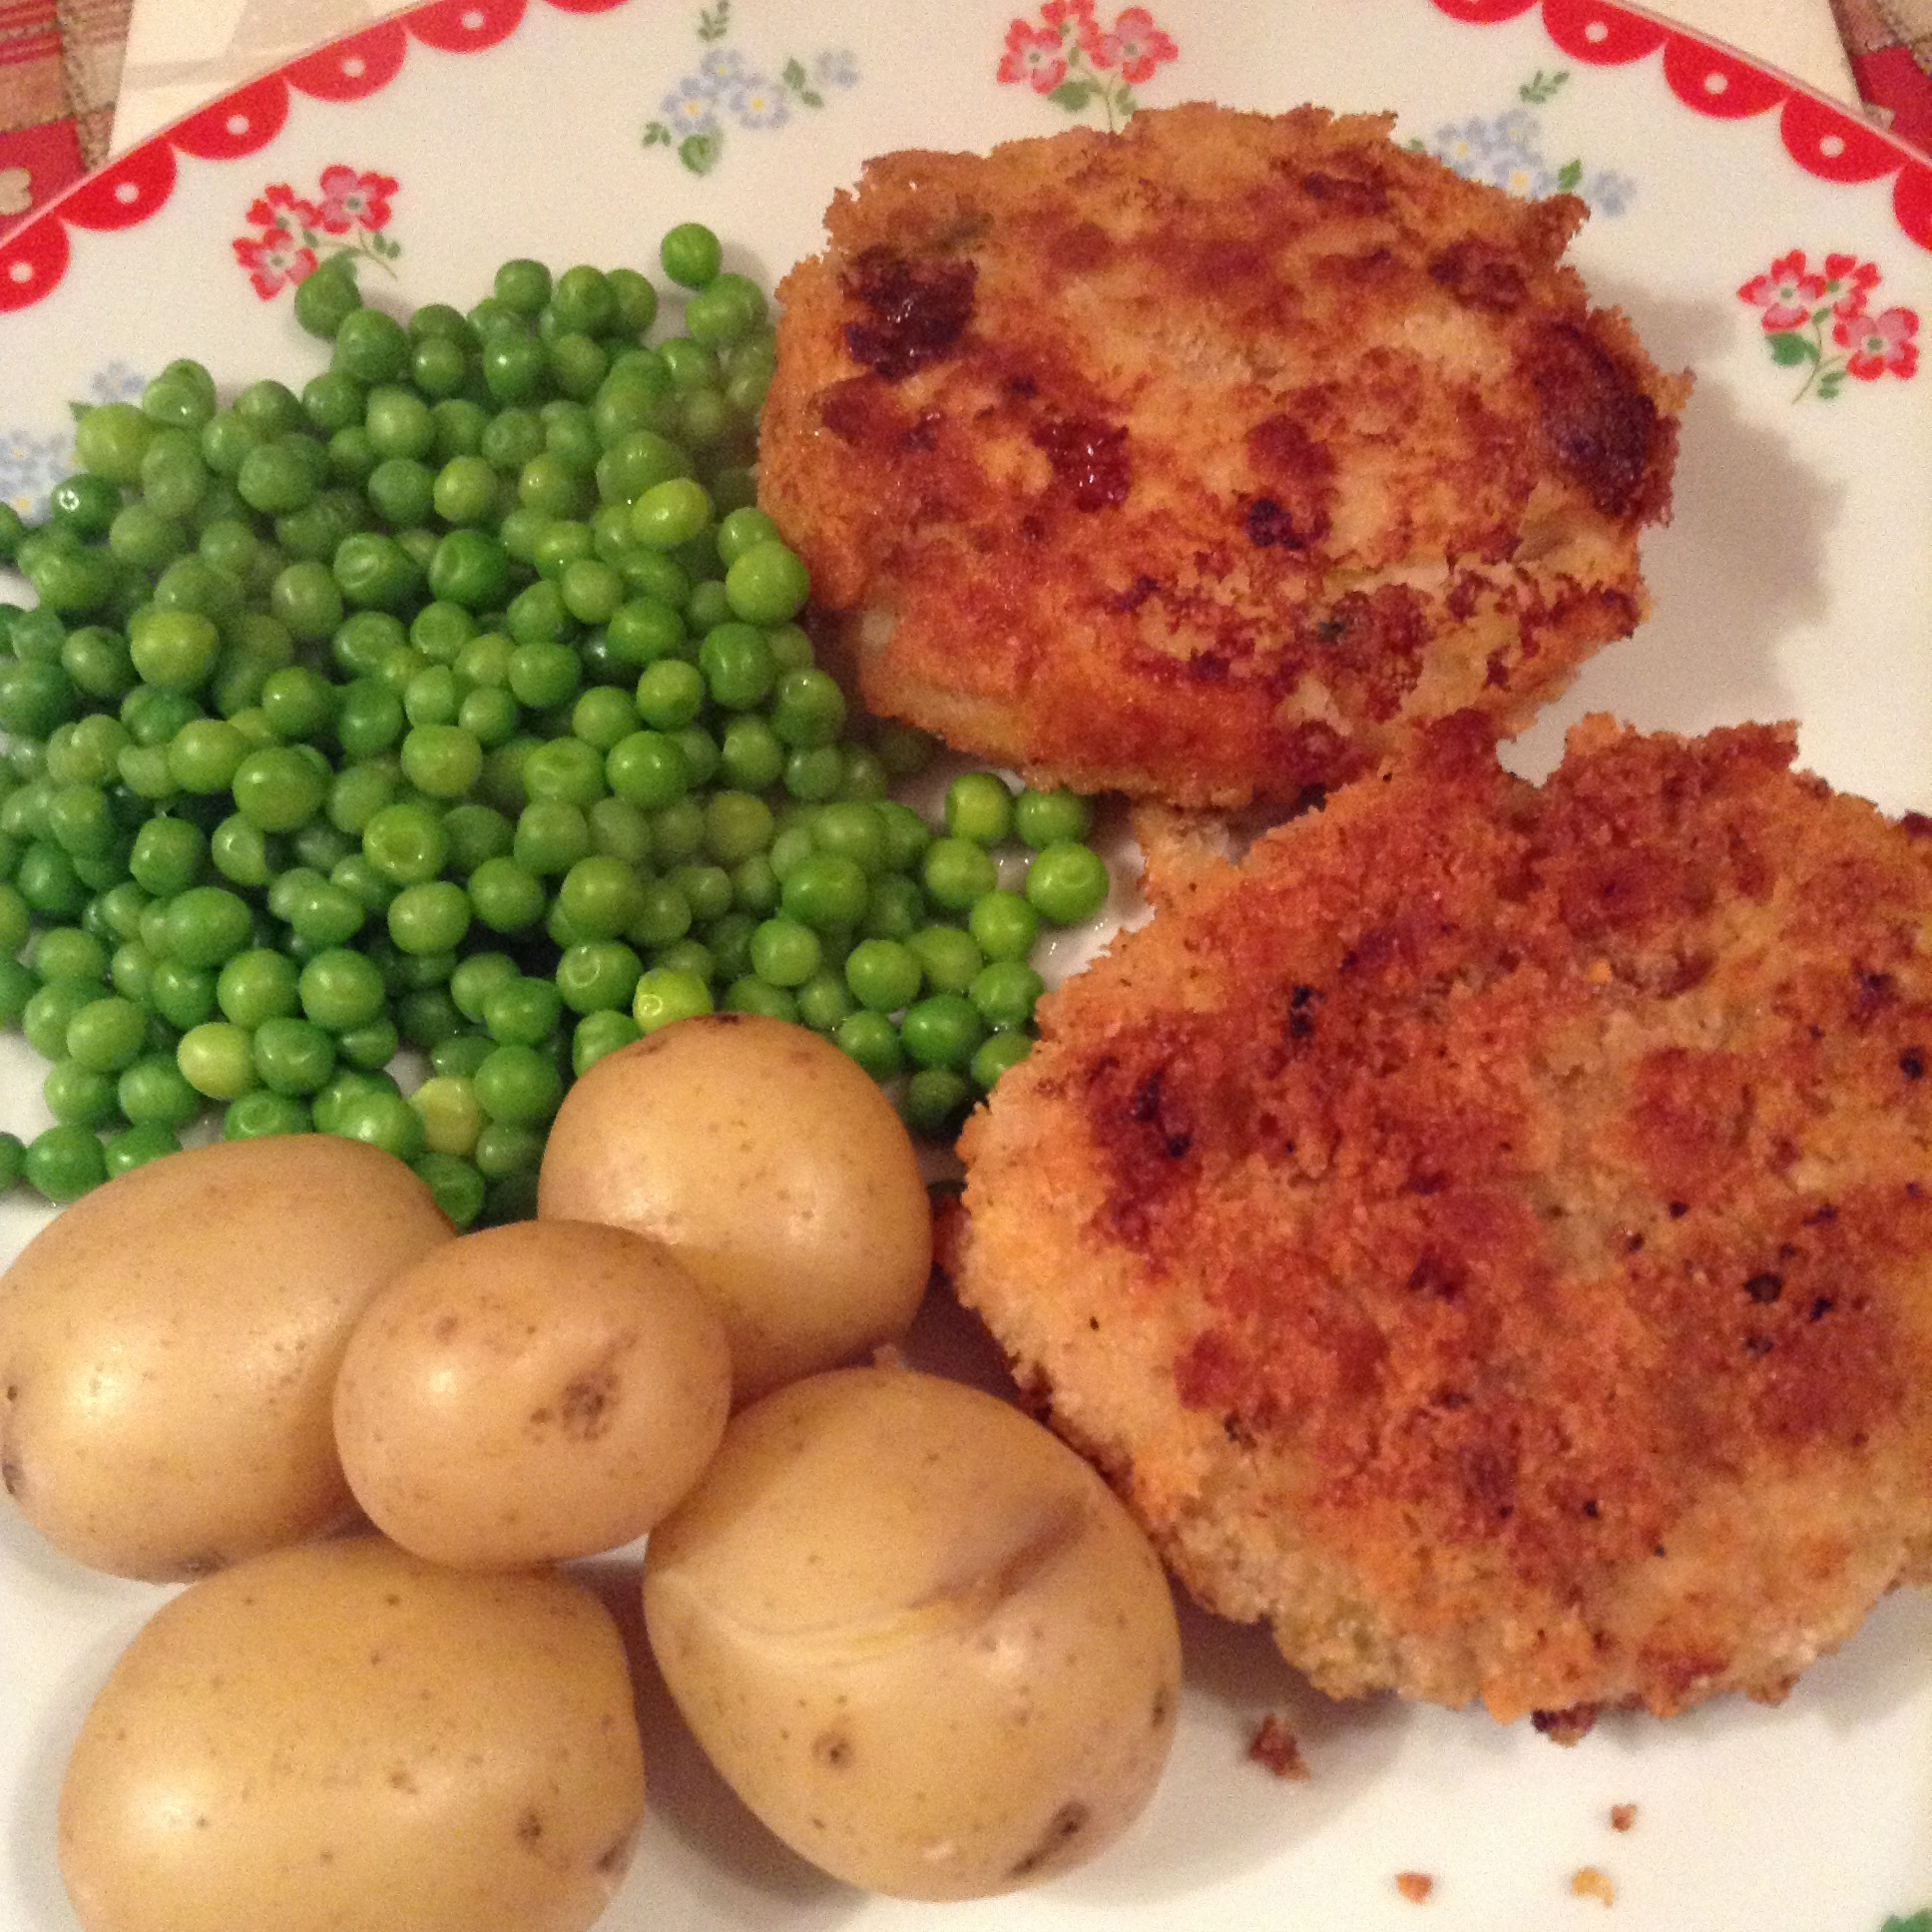 Homemade Fish cakes